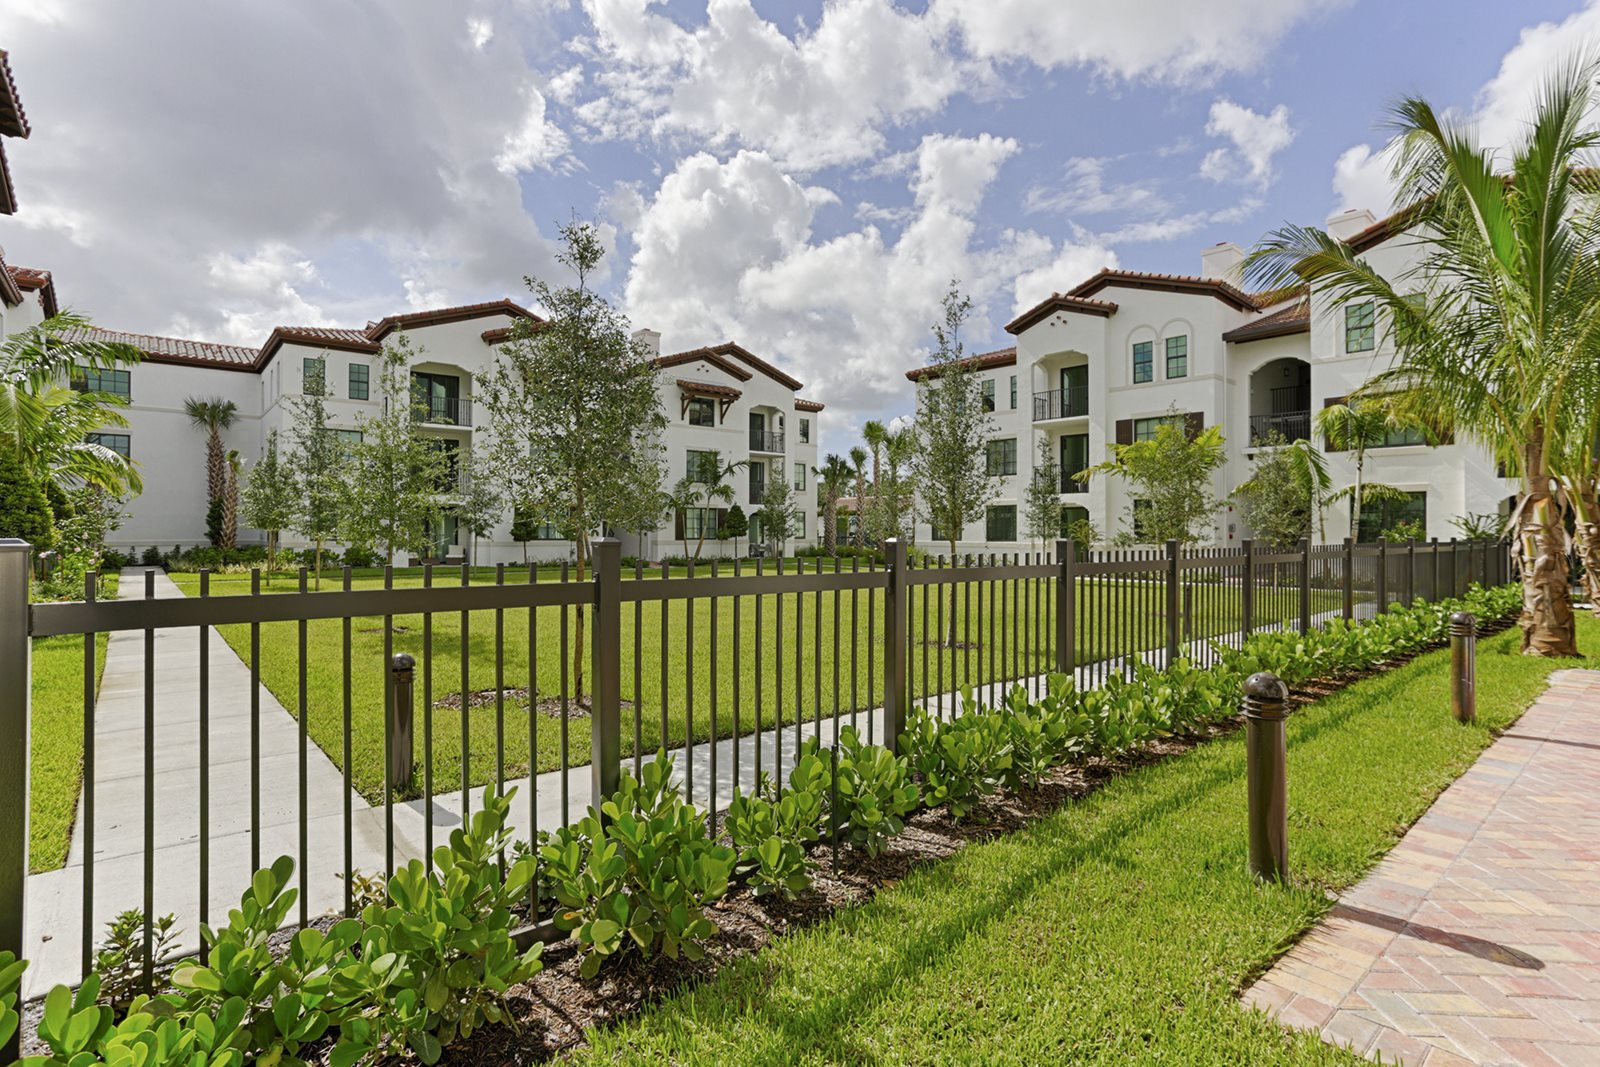 Doral Apartments with Green Spaces- Mirador at Doral by Windsor